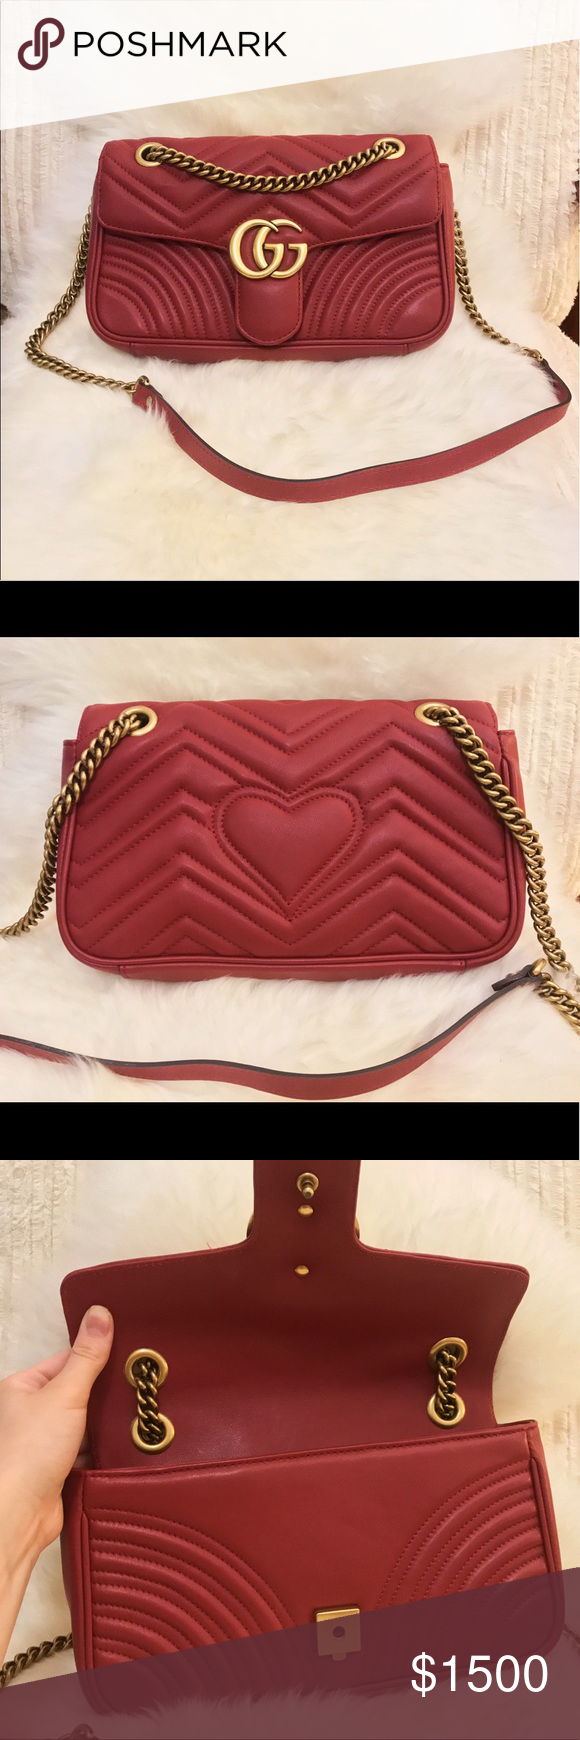 2090fb6fa Gucci GG Marmont Matelassé small bag Worn literally once and has zero signs  of wear. Hibiscus red leather. Has card of authenticity, dust bag, and  shopping ...